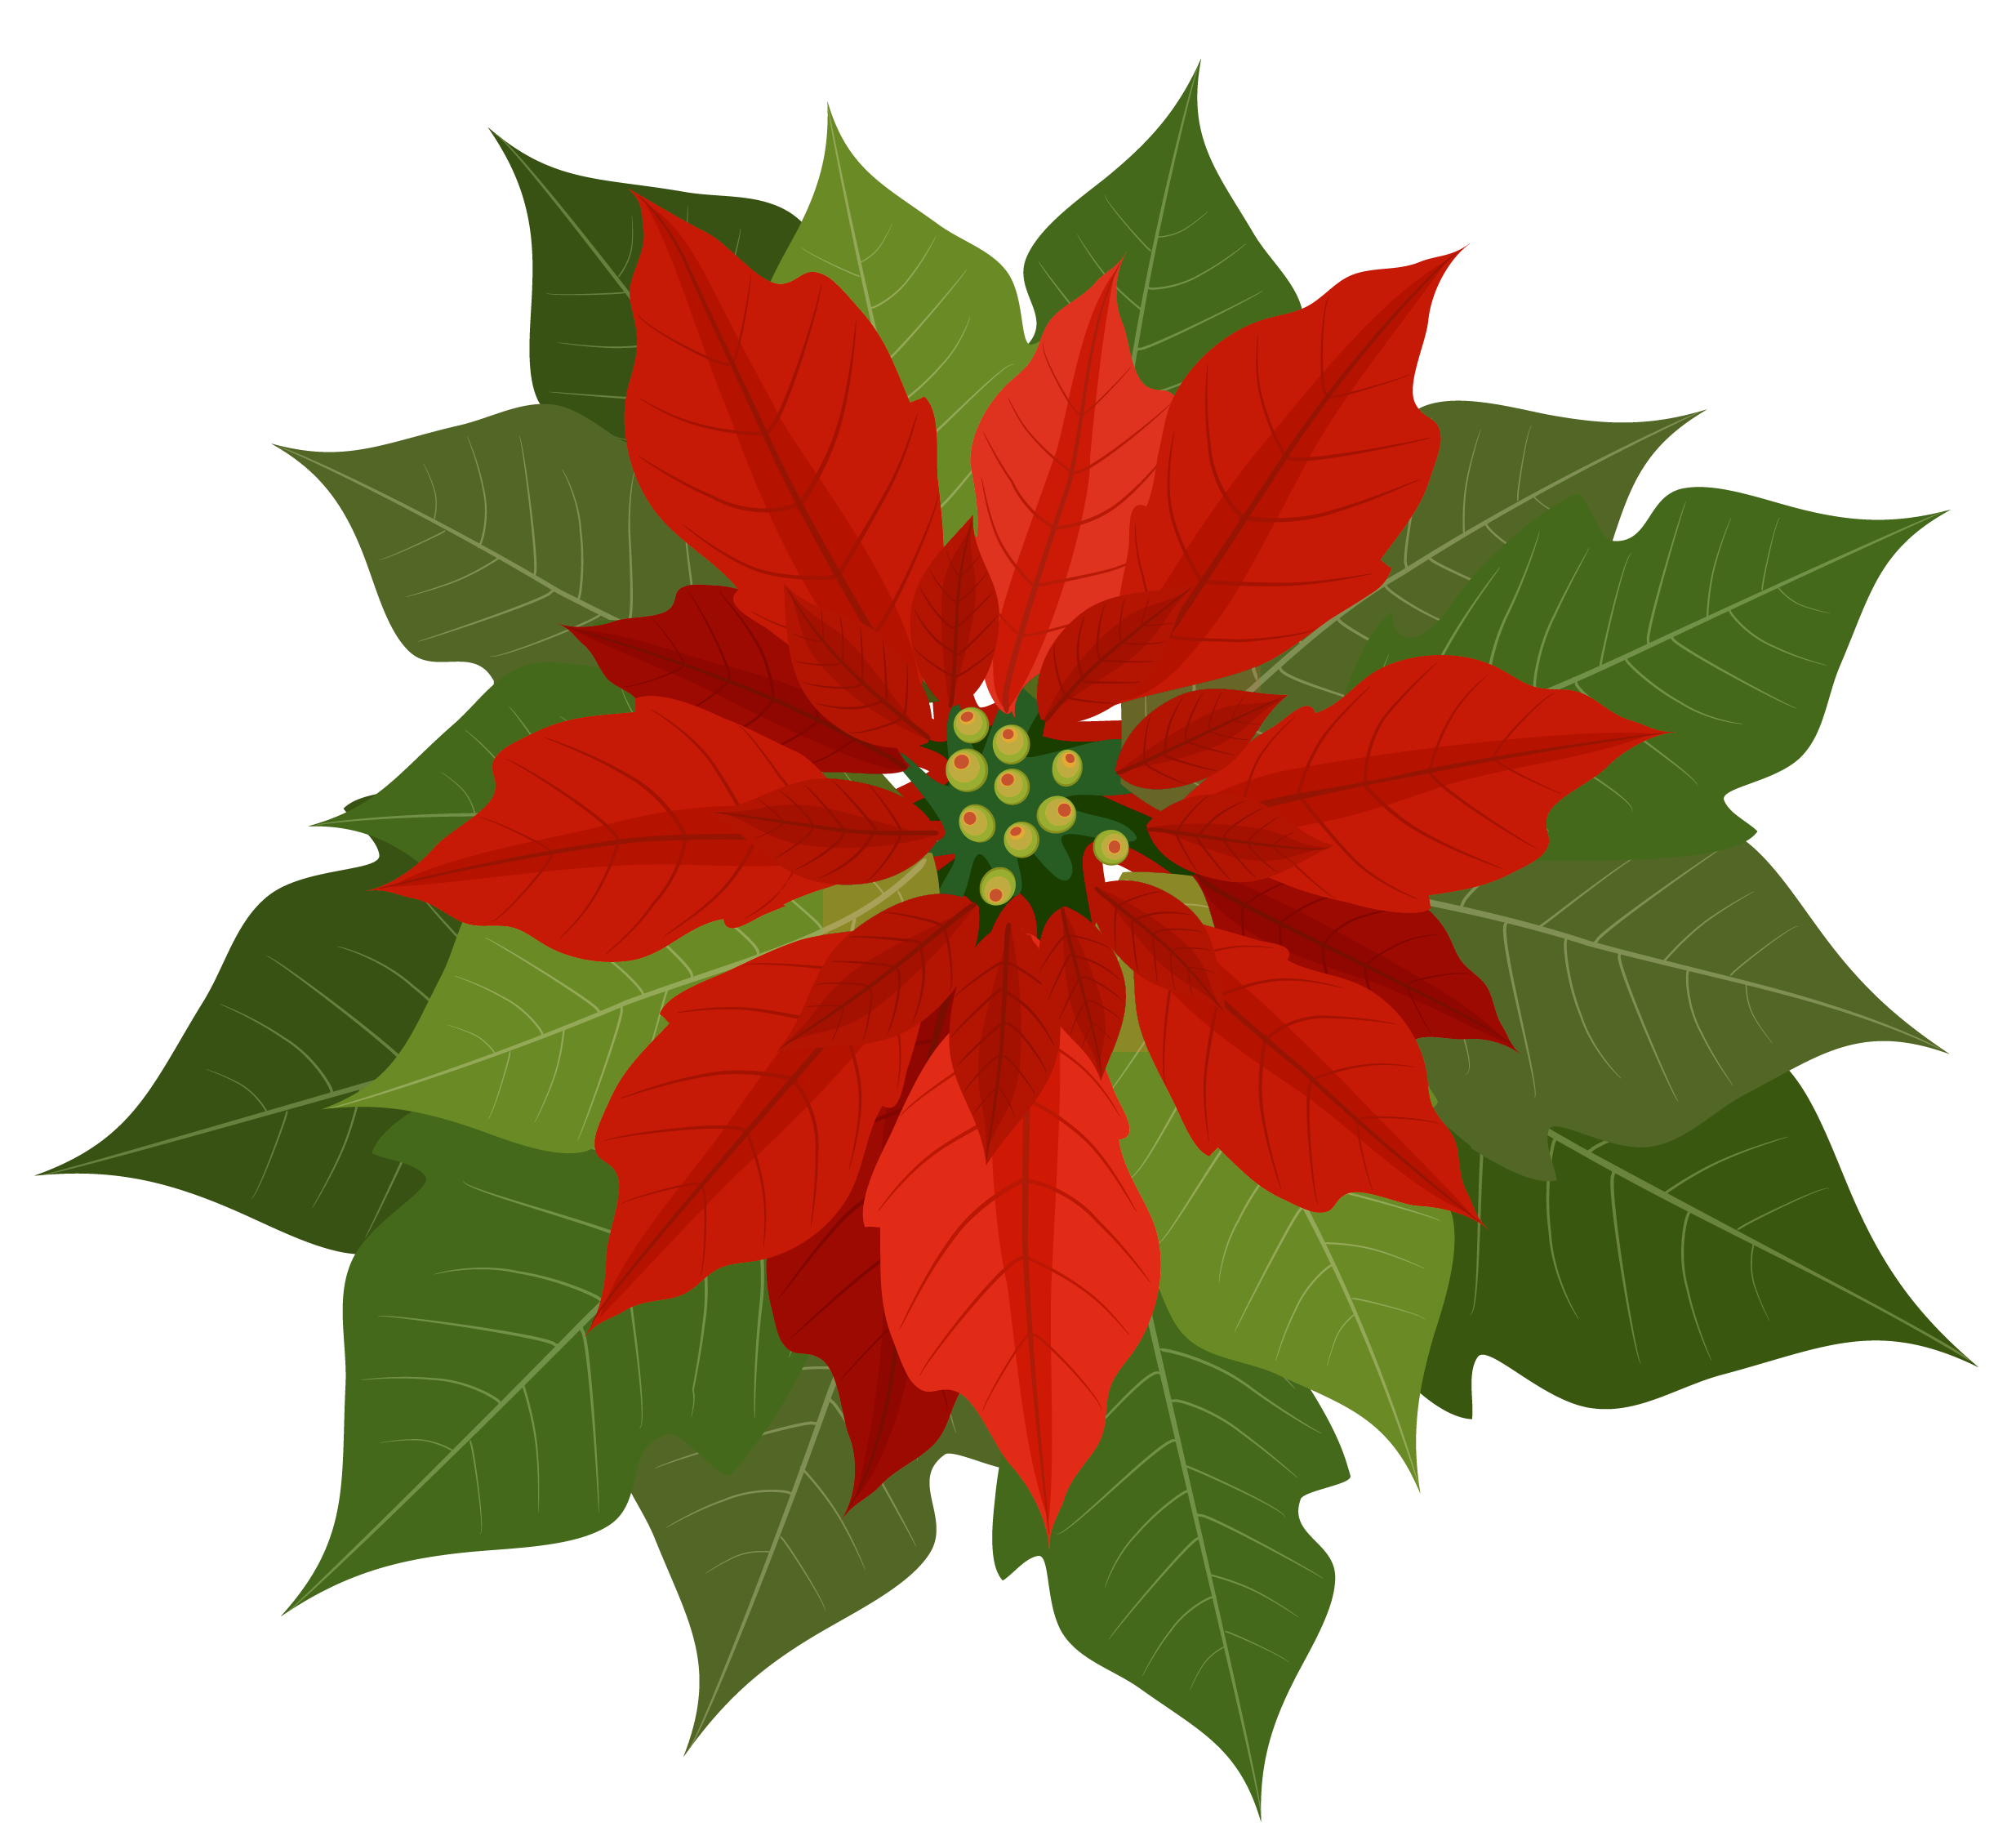 Free poinsettias cliparts download. Poinsettia clipart